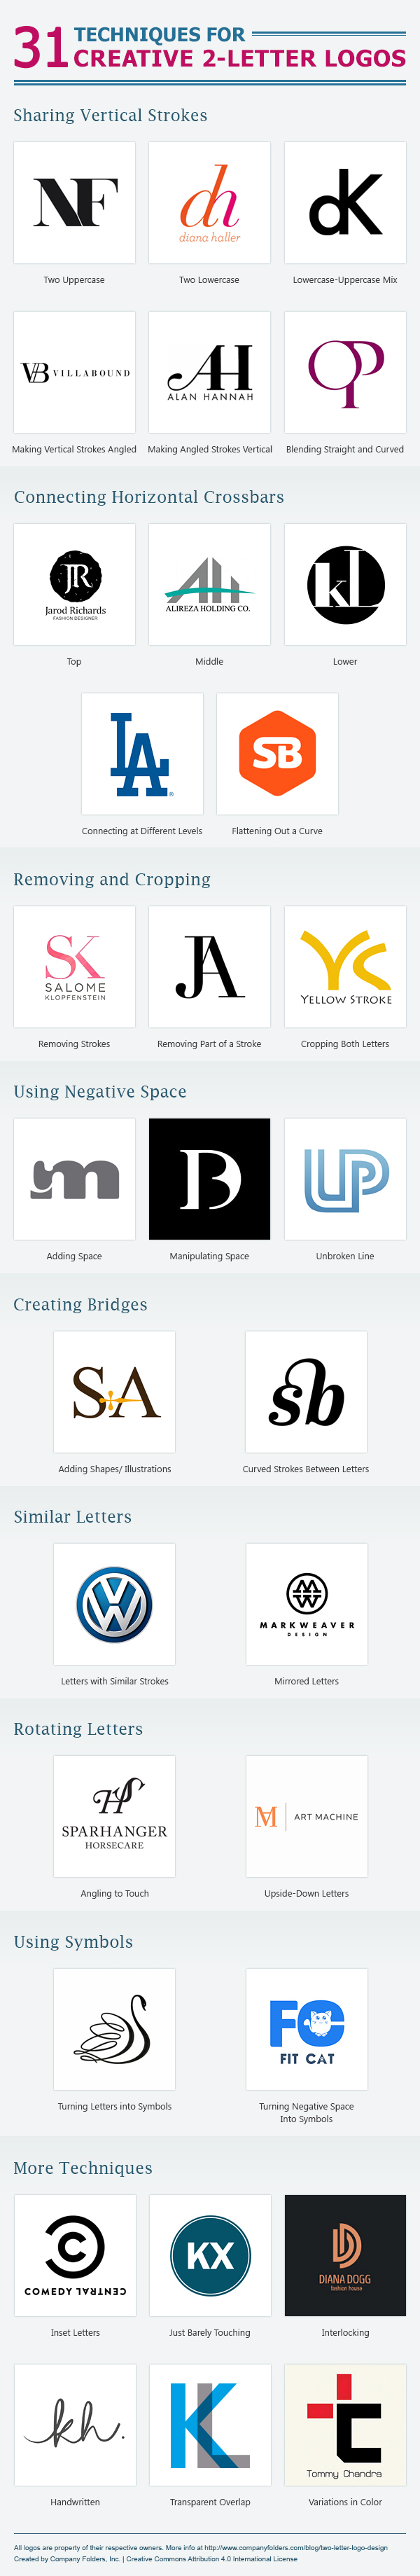 Got a 2-Letter Business Name? 31 Ways to Make Your Logo More Creative